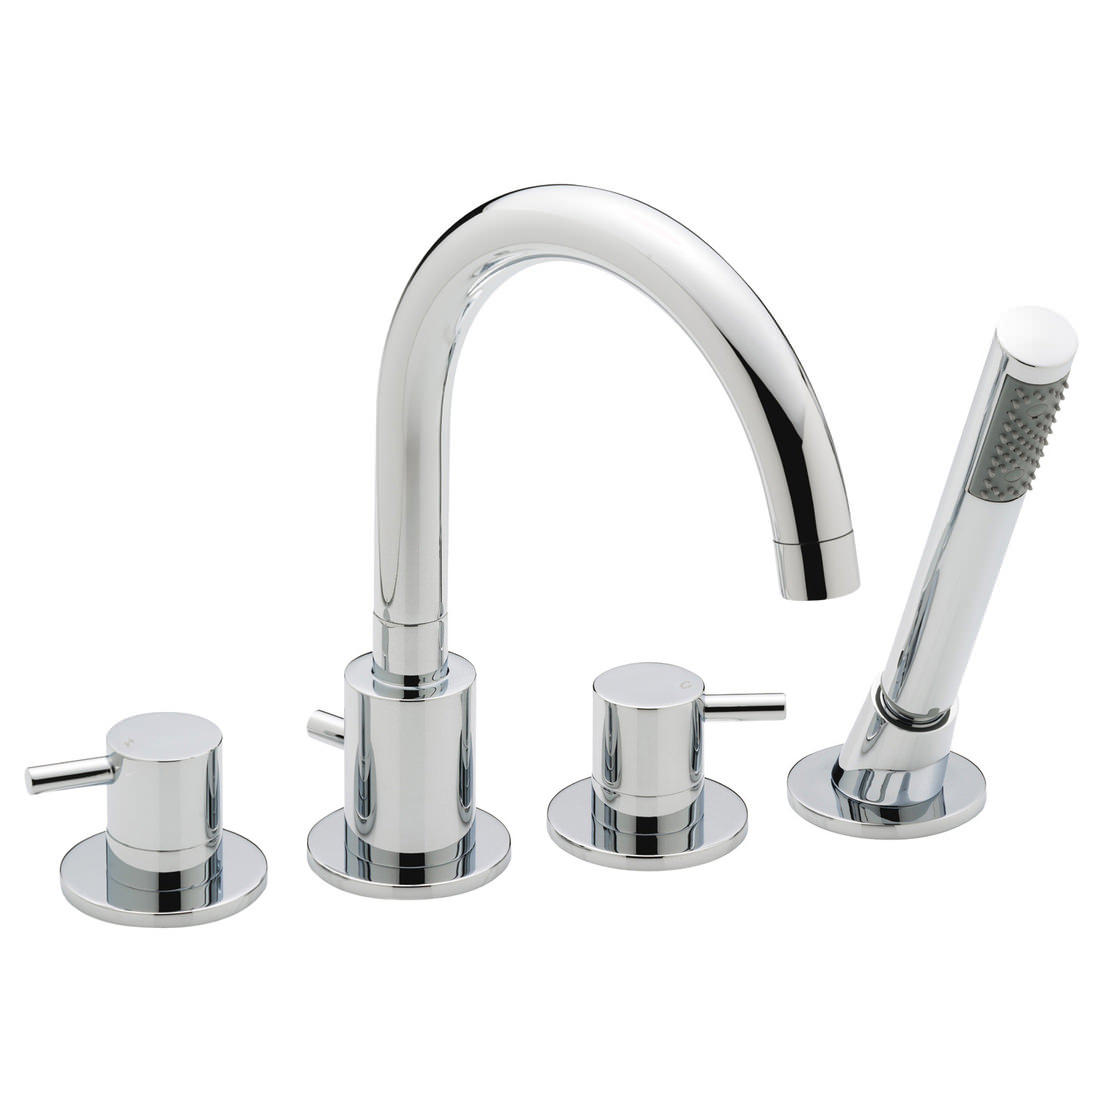 sagittarius ergo 4 hole deck mounted bath shower mixer tap el 114 c sagittarius ergo 4 hole deck mounted bath shower mixer tap